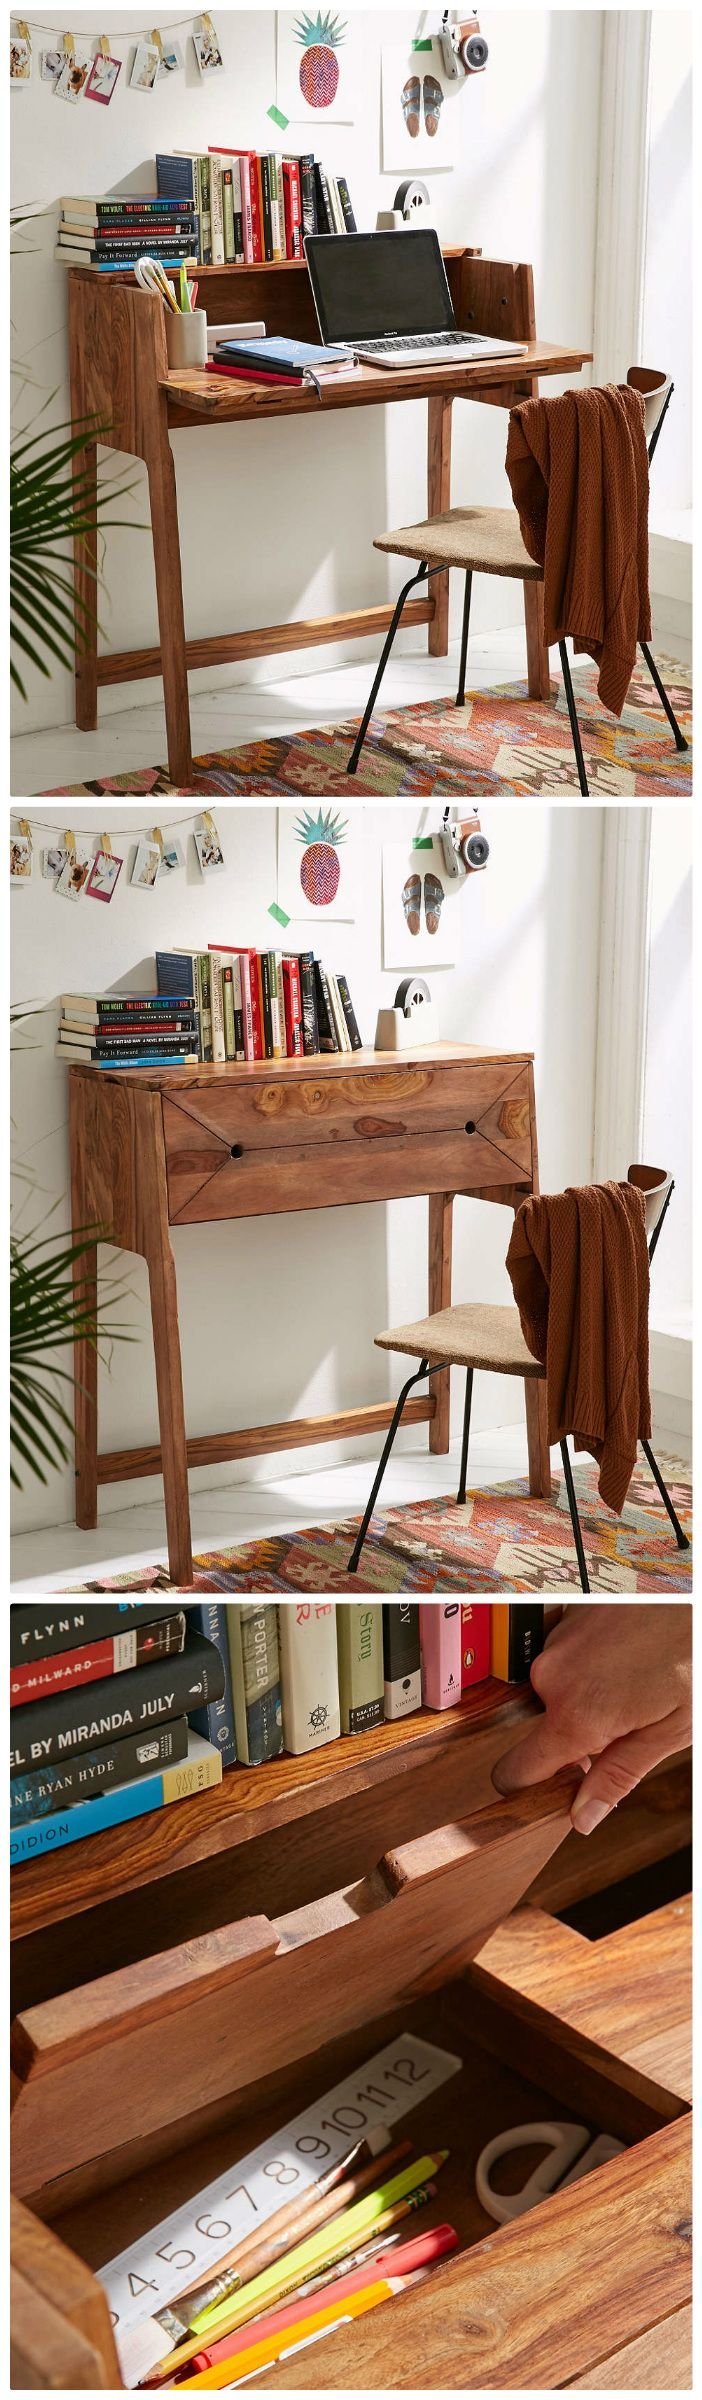 Exceptionnel Ten Space Saving Desks That Work Great In Small Living Spaces